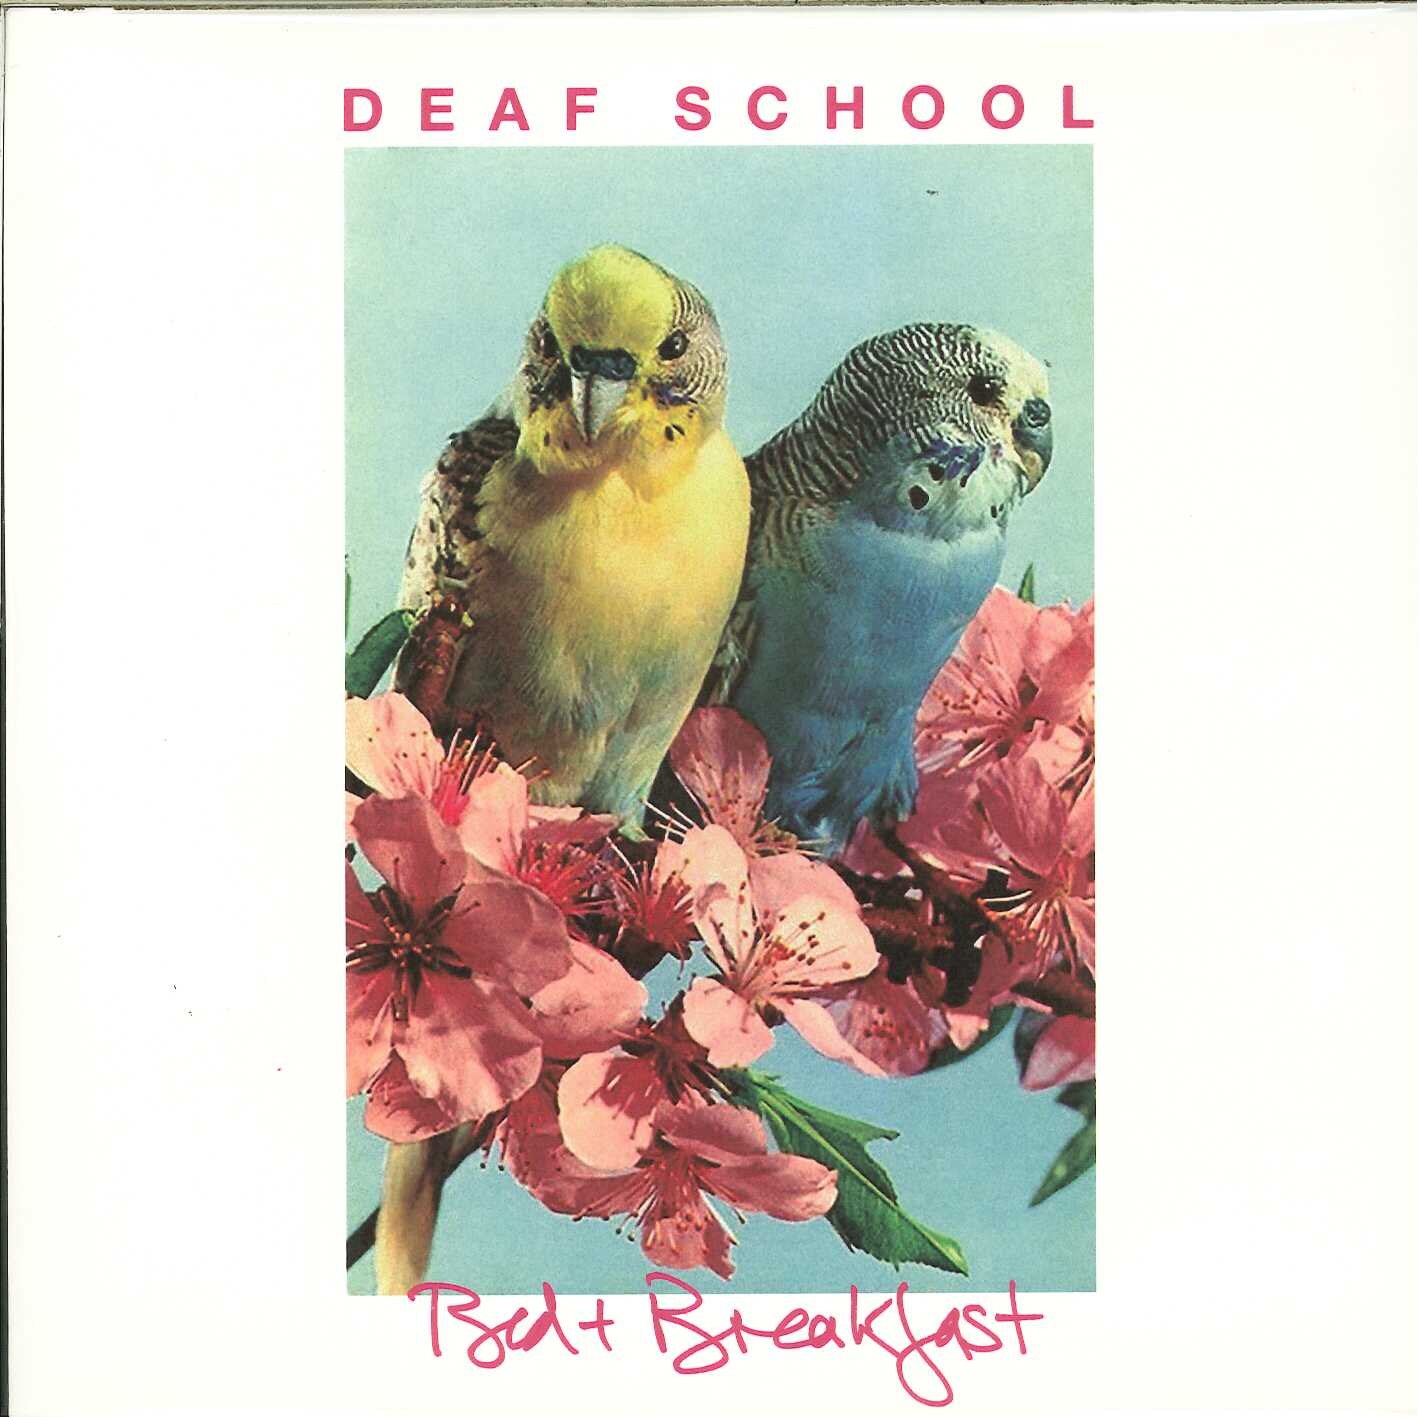 DEAF SCHOOL / BED & BREAKFAST